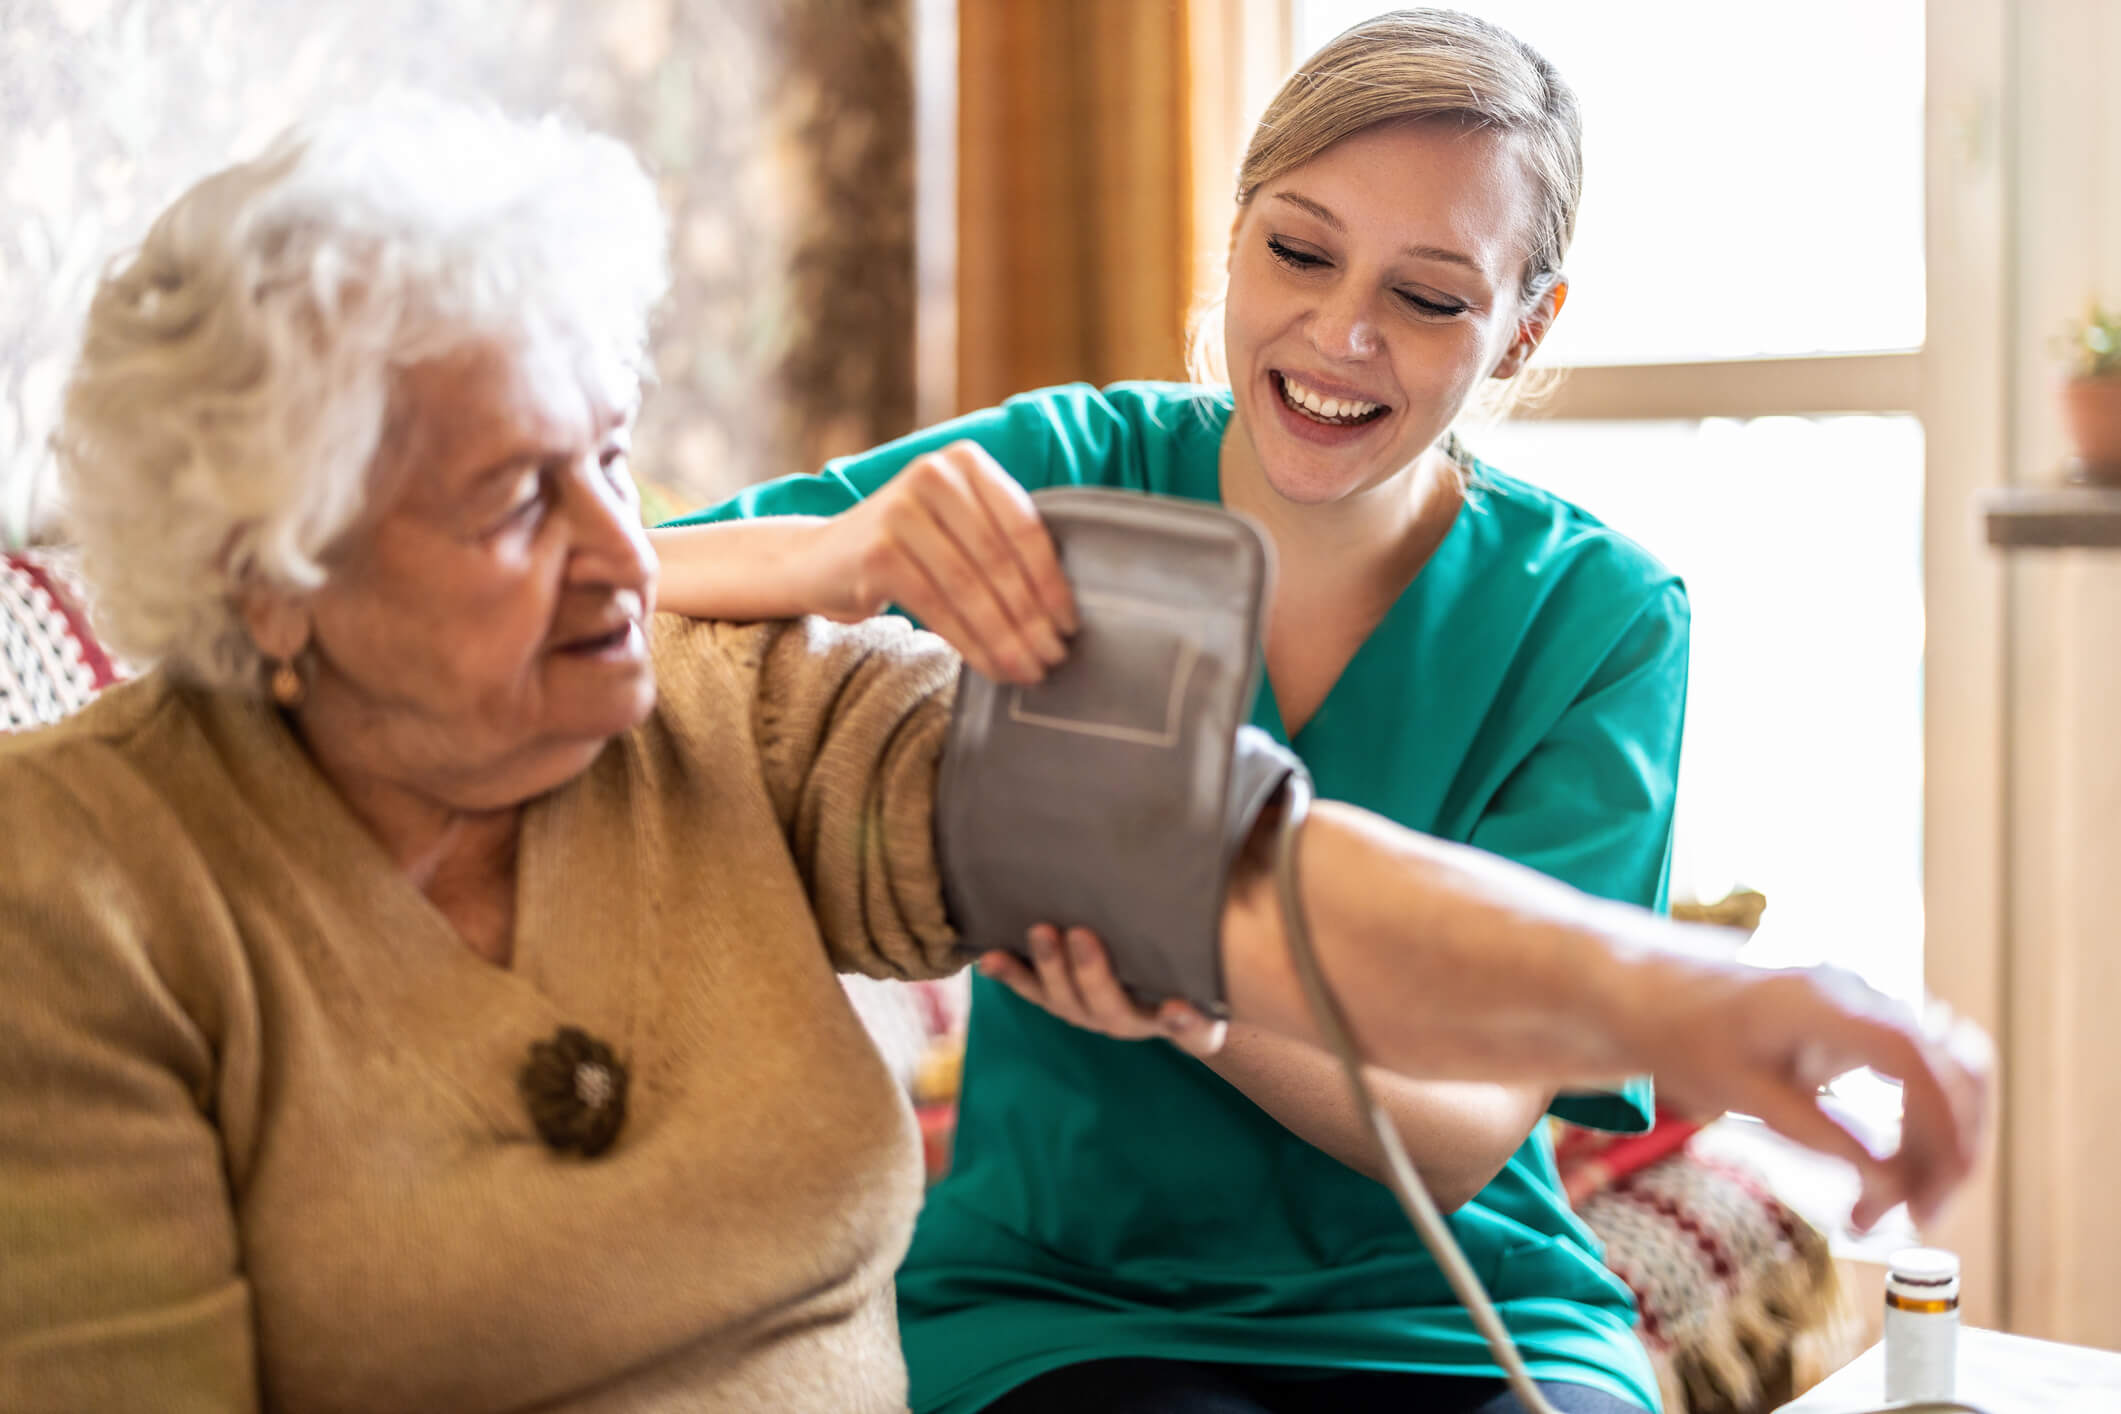 Image of previous post - ASSISTED LIVING VS HOME HEALTH CARE: WHAT'S THE DIFFERENCE?